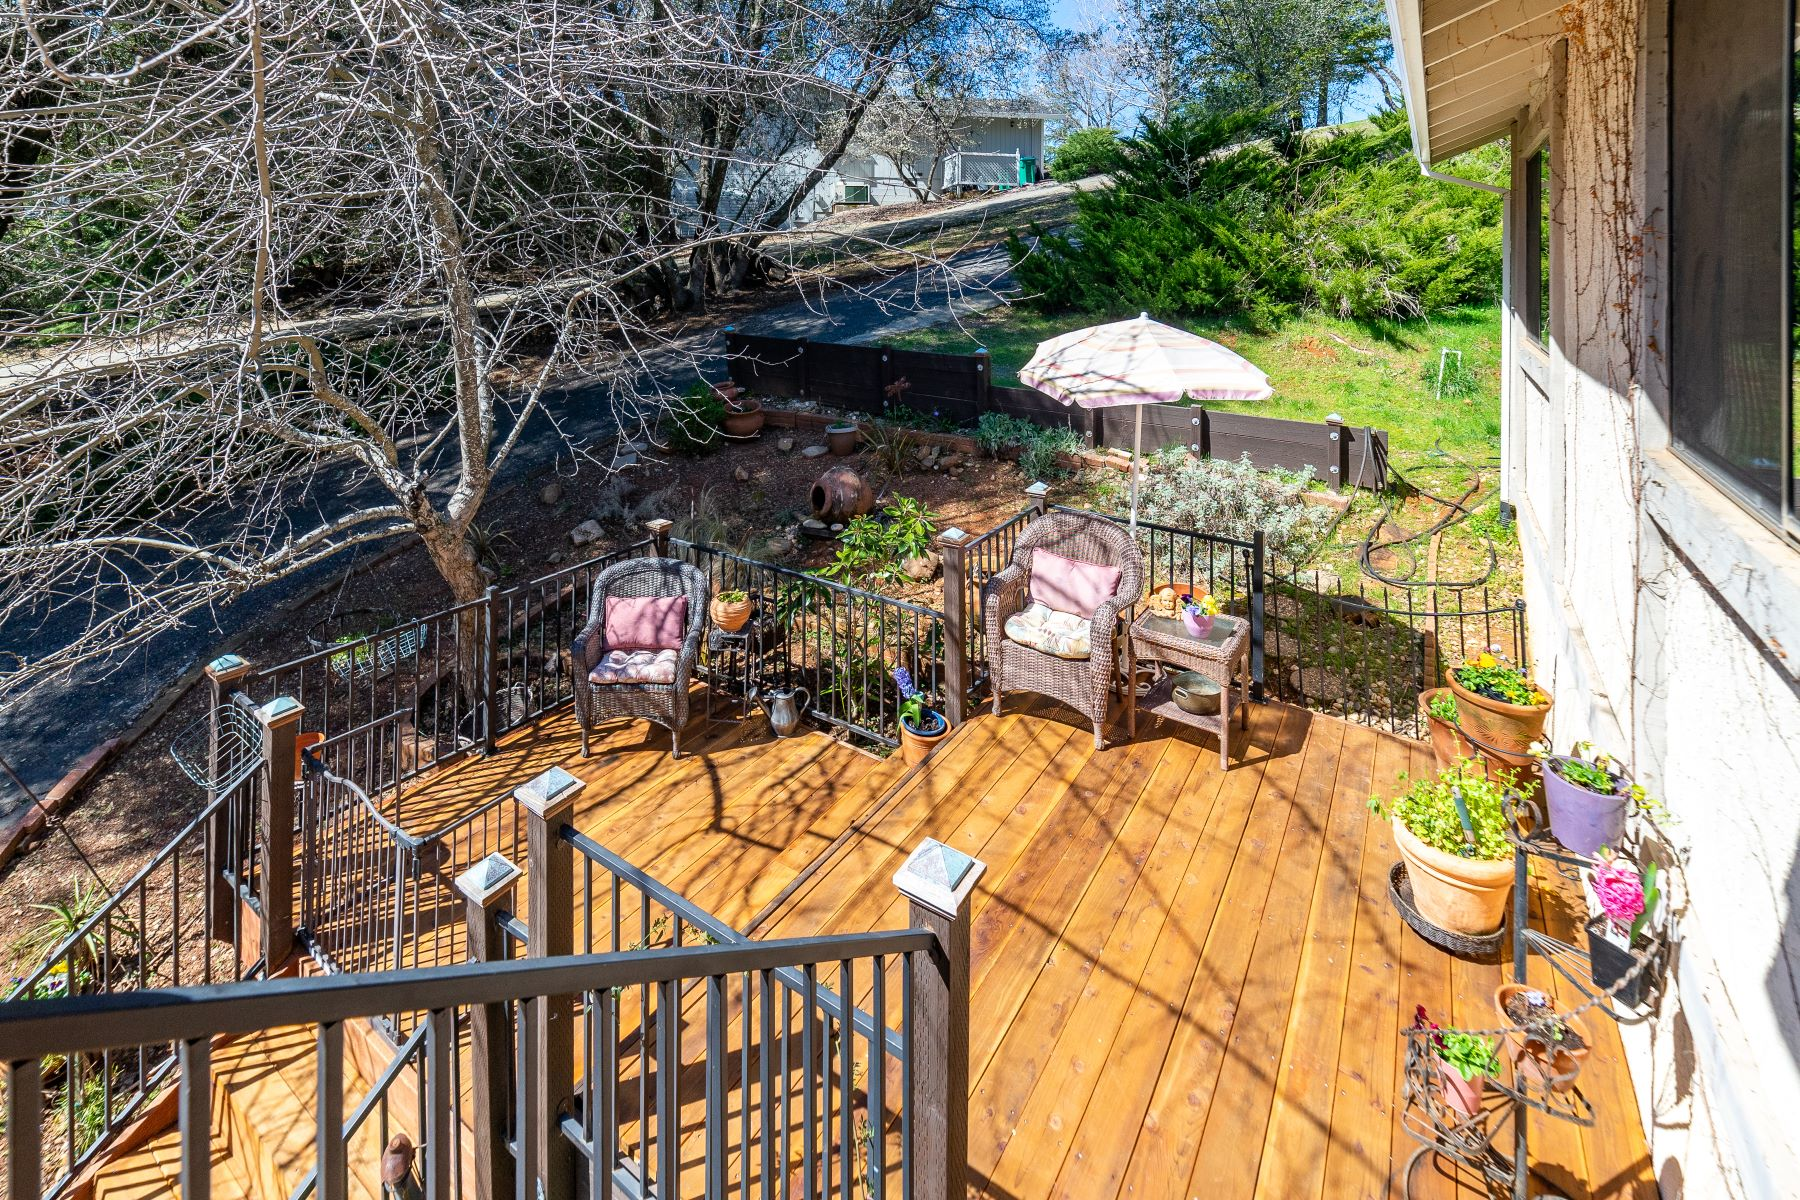 Additional photo for property listing at Beautifully Updated Home In The Country Among All The Trees and Outcroppings 25139 Long Court Auburn, California 95602 United States